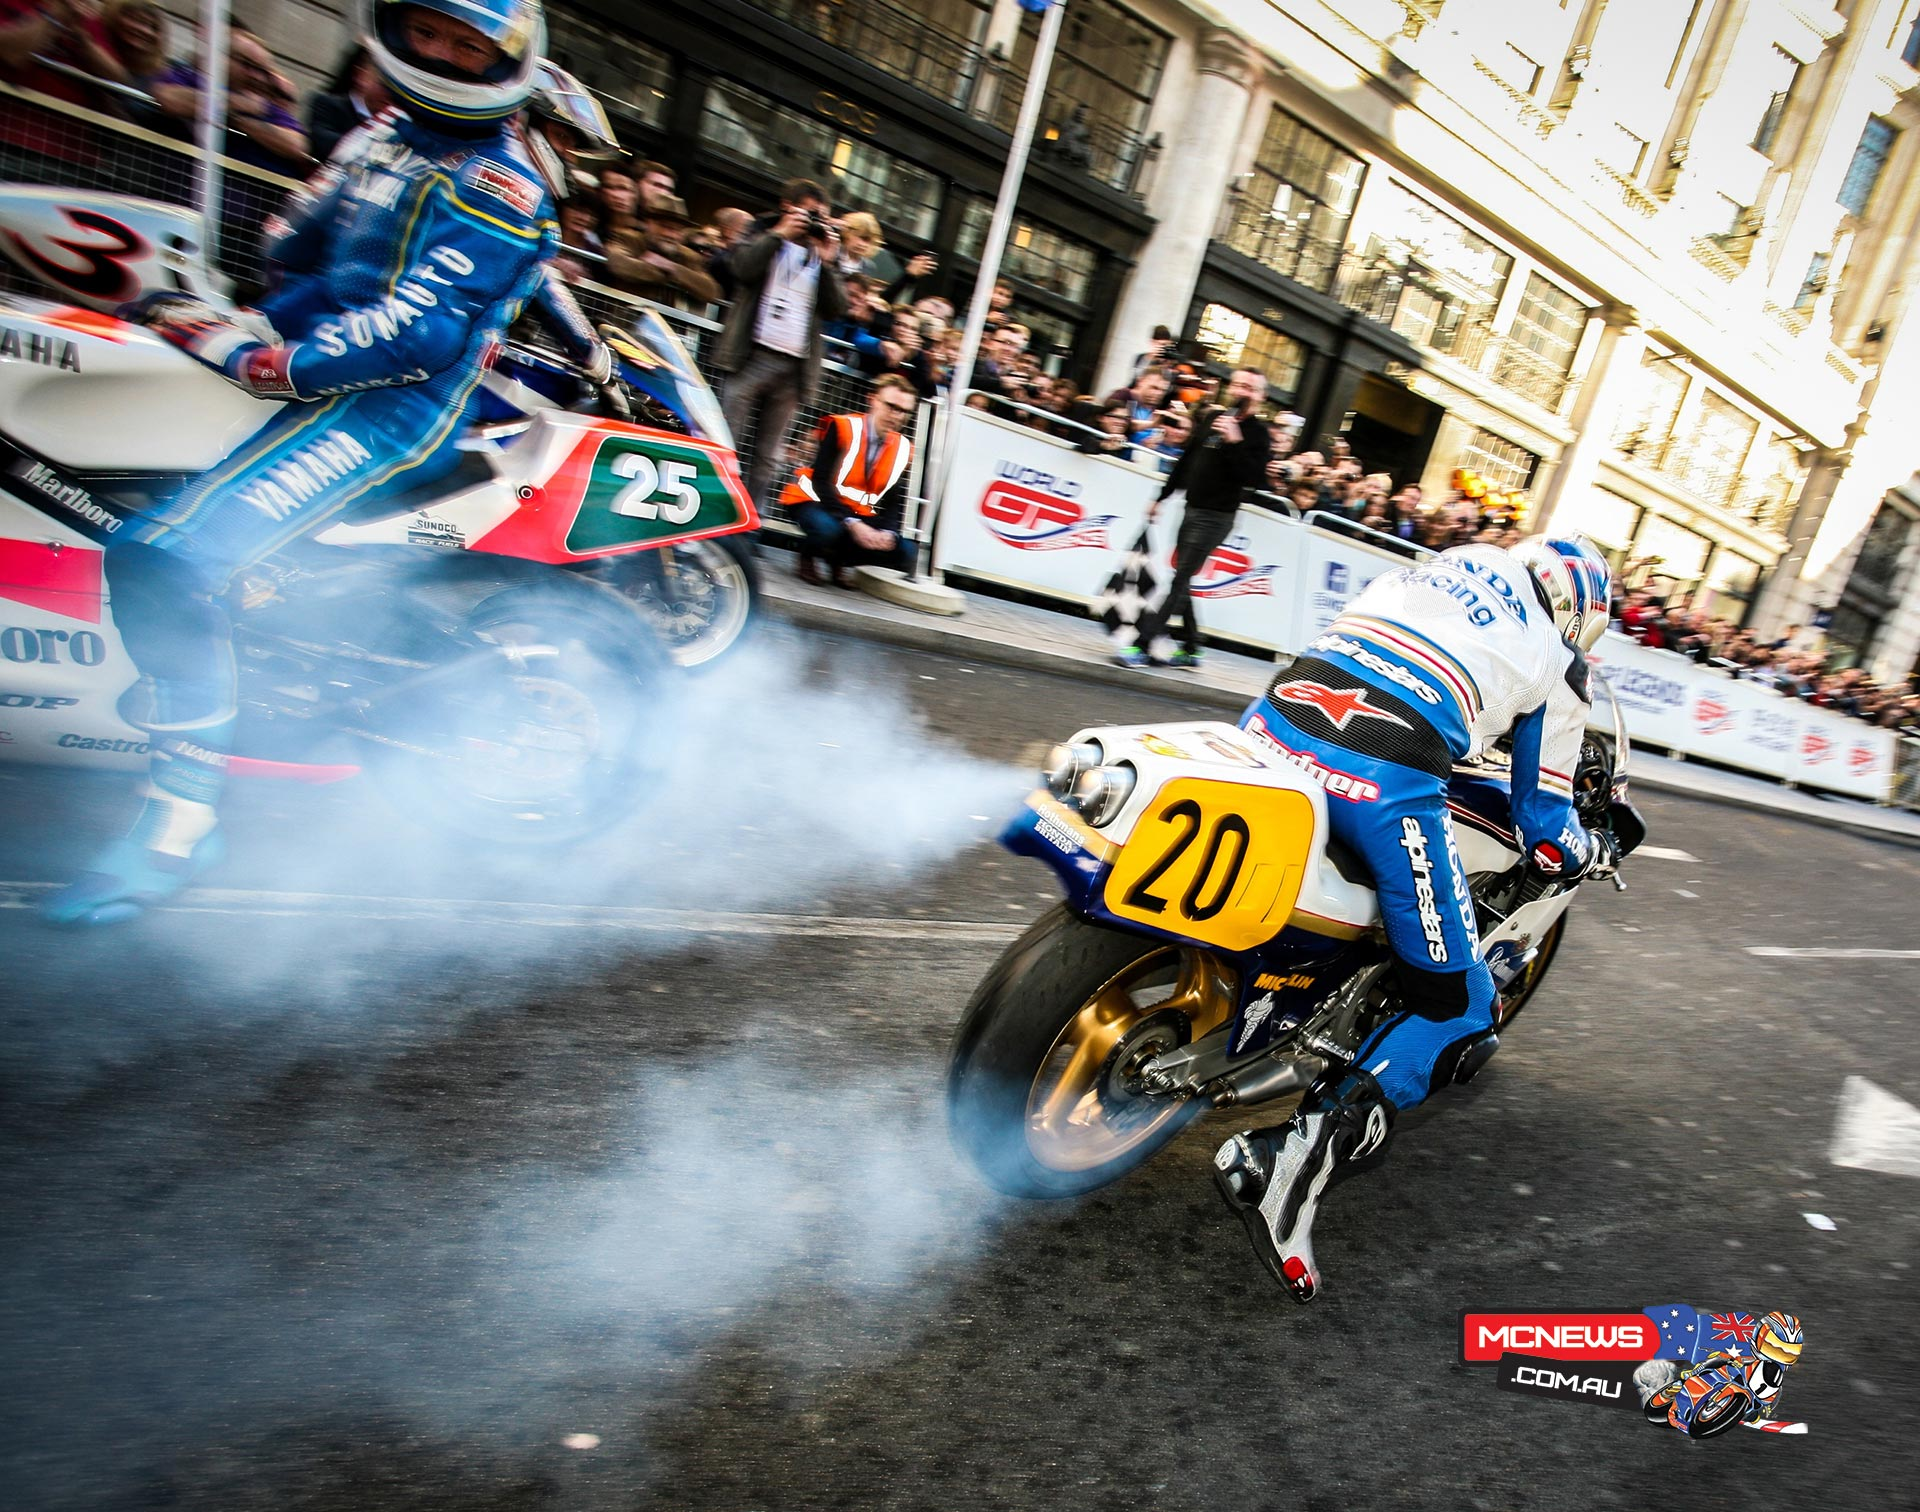 Freddie Spencer, Wayne Gardner, Christian Sarron and Didier de Radiguès presented all-new World GP Bike Legends at the Regent Street Motor Show.